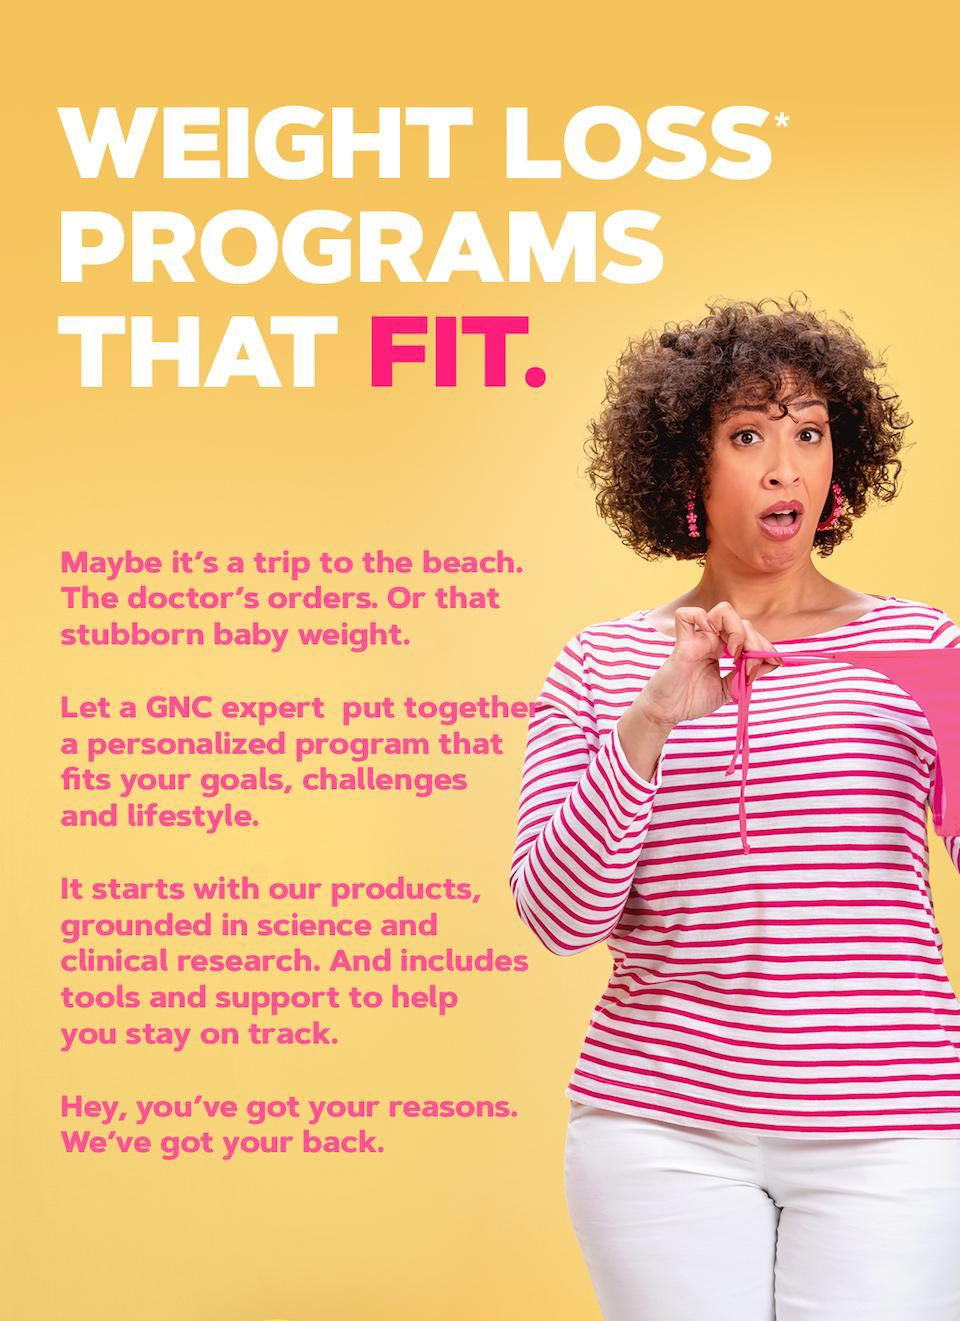 WEIGHT LOSS* PROGRAMS THAT FIT.